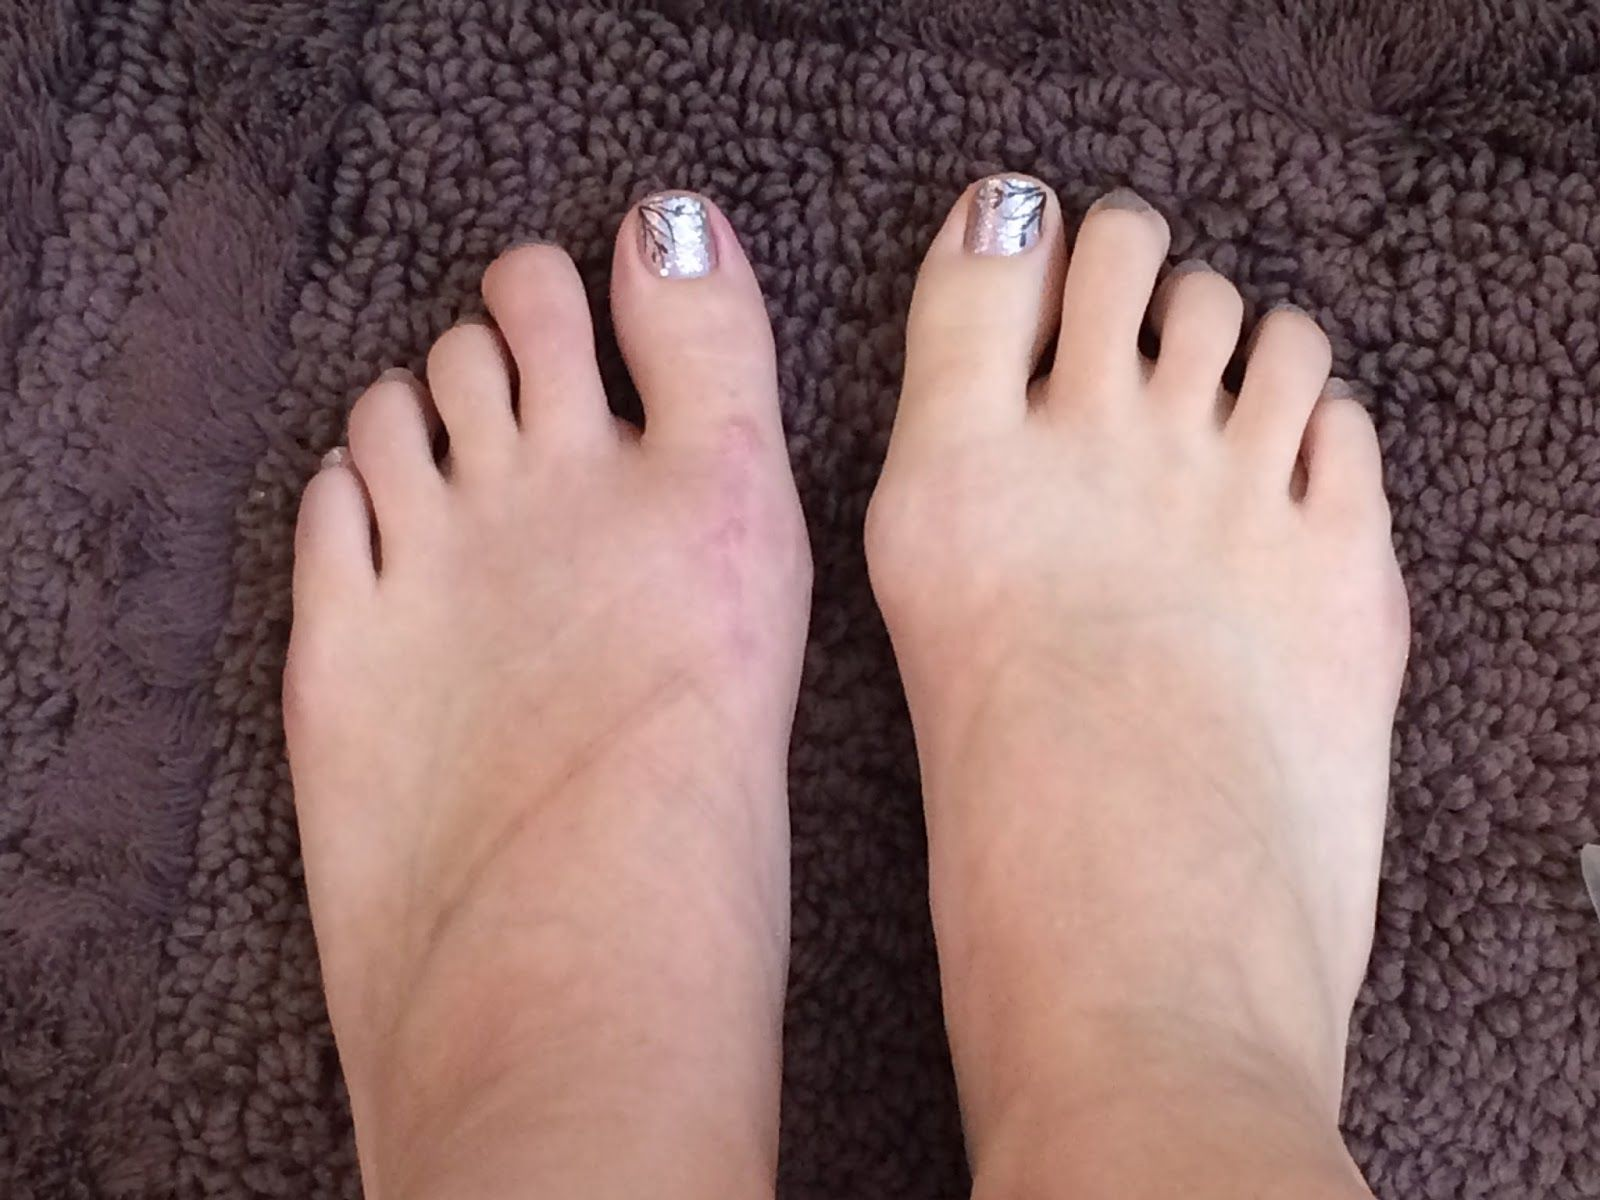 My bunionectomy experience: Week 12. The left foot is not swelling too much and I am very pleased with the outcome so far:)